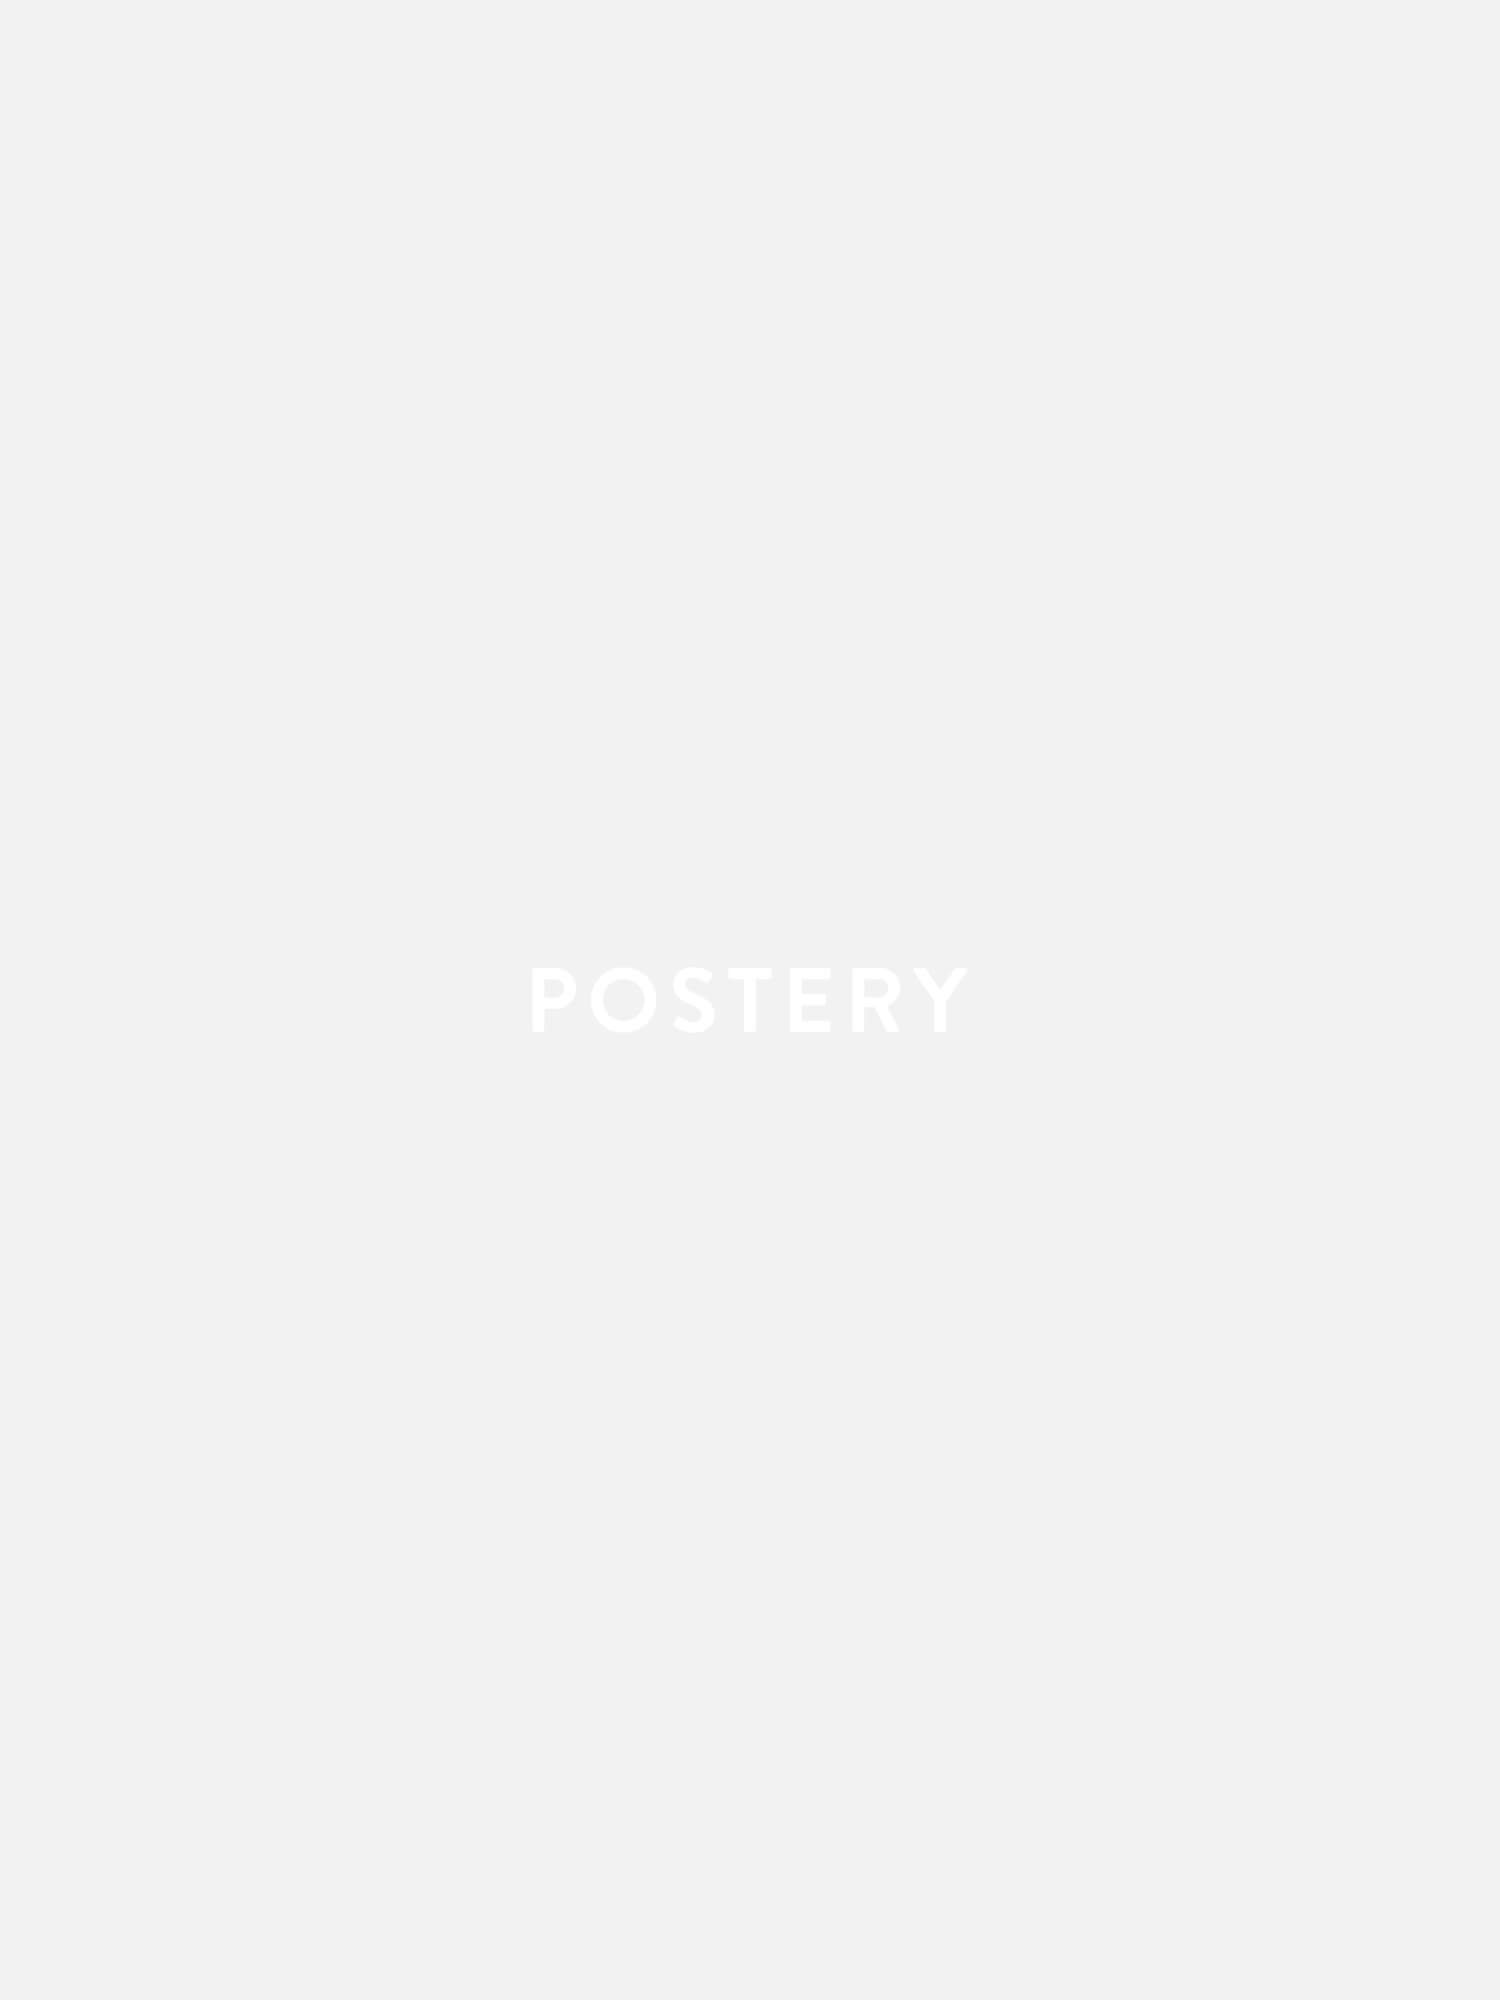 Green Palm Leaf no.1 Poster